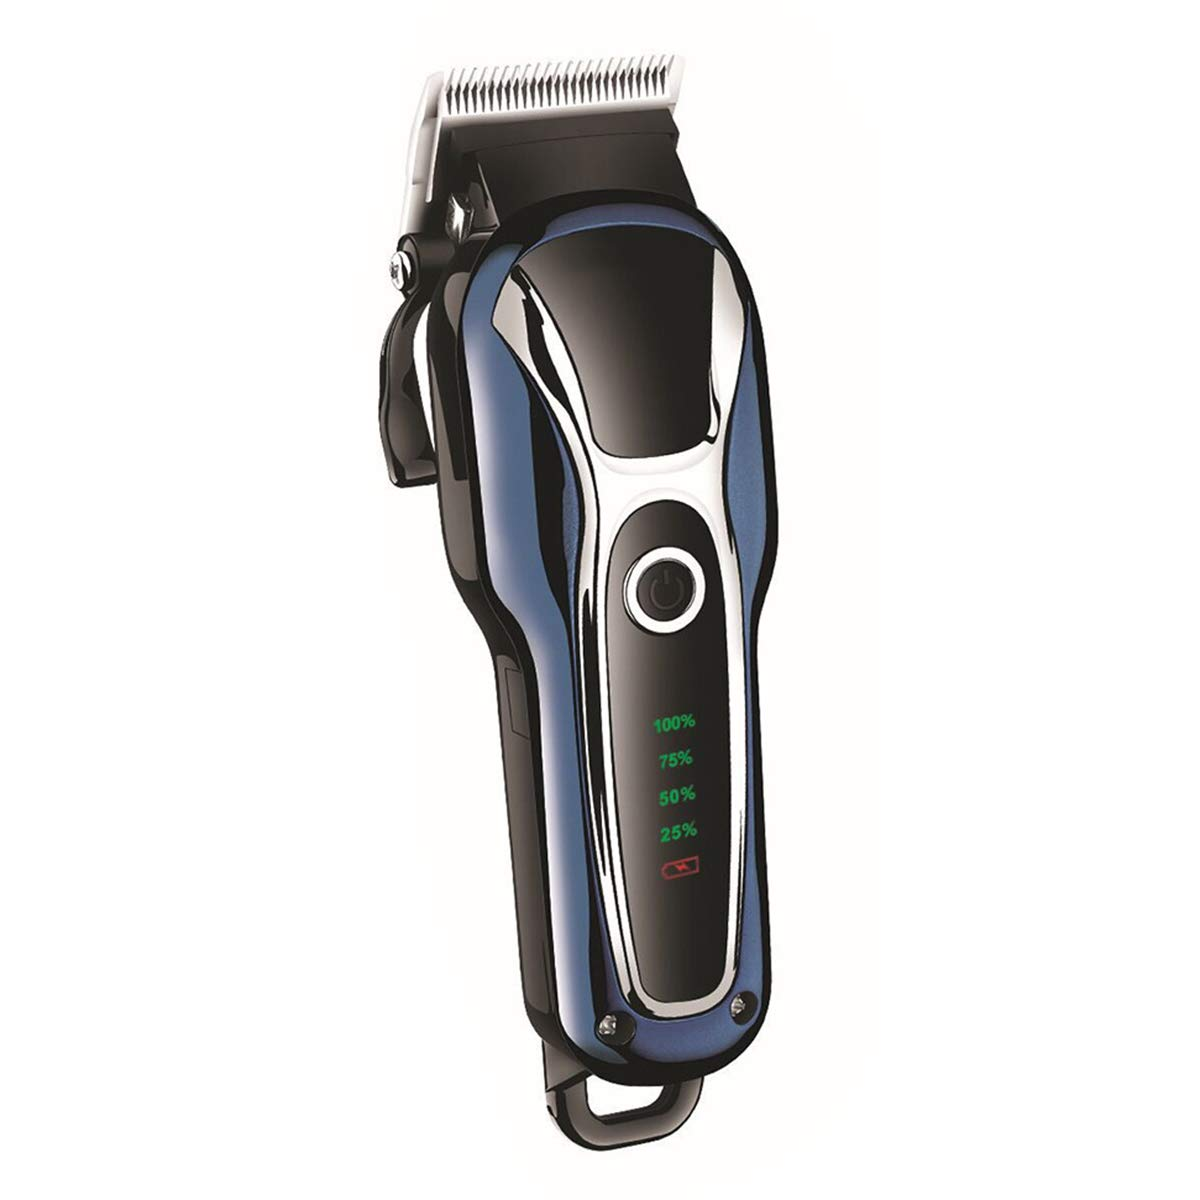 Outlet ☆ Free Shipping SOONHUA Professional Electric Hair Many popular brands Clipper Set Rechargeable